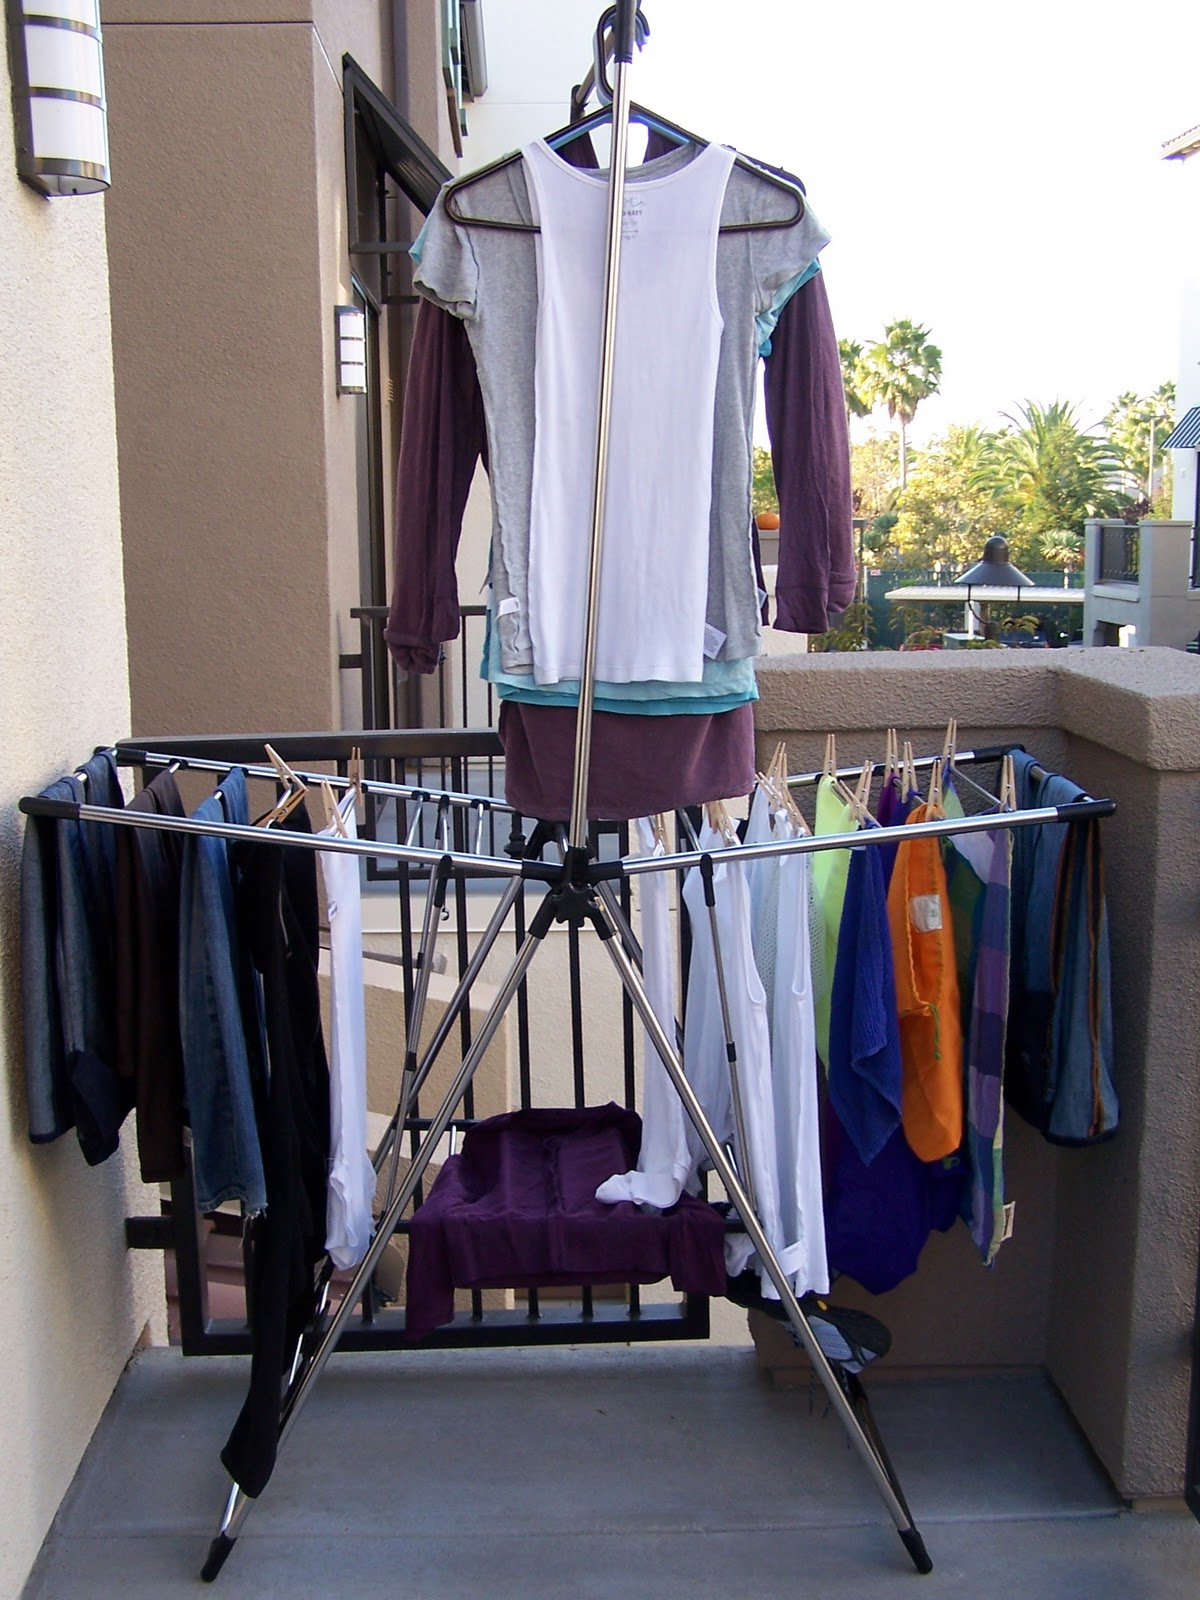 Hanging Out Laundry To Dry Even In A Dorm Room Treading Lightly